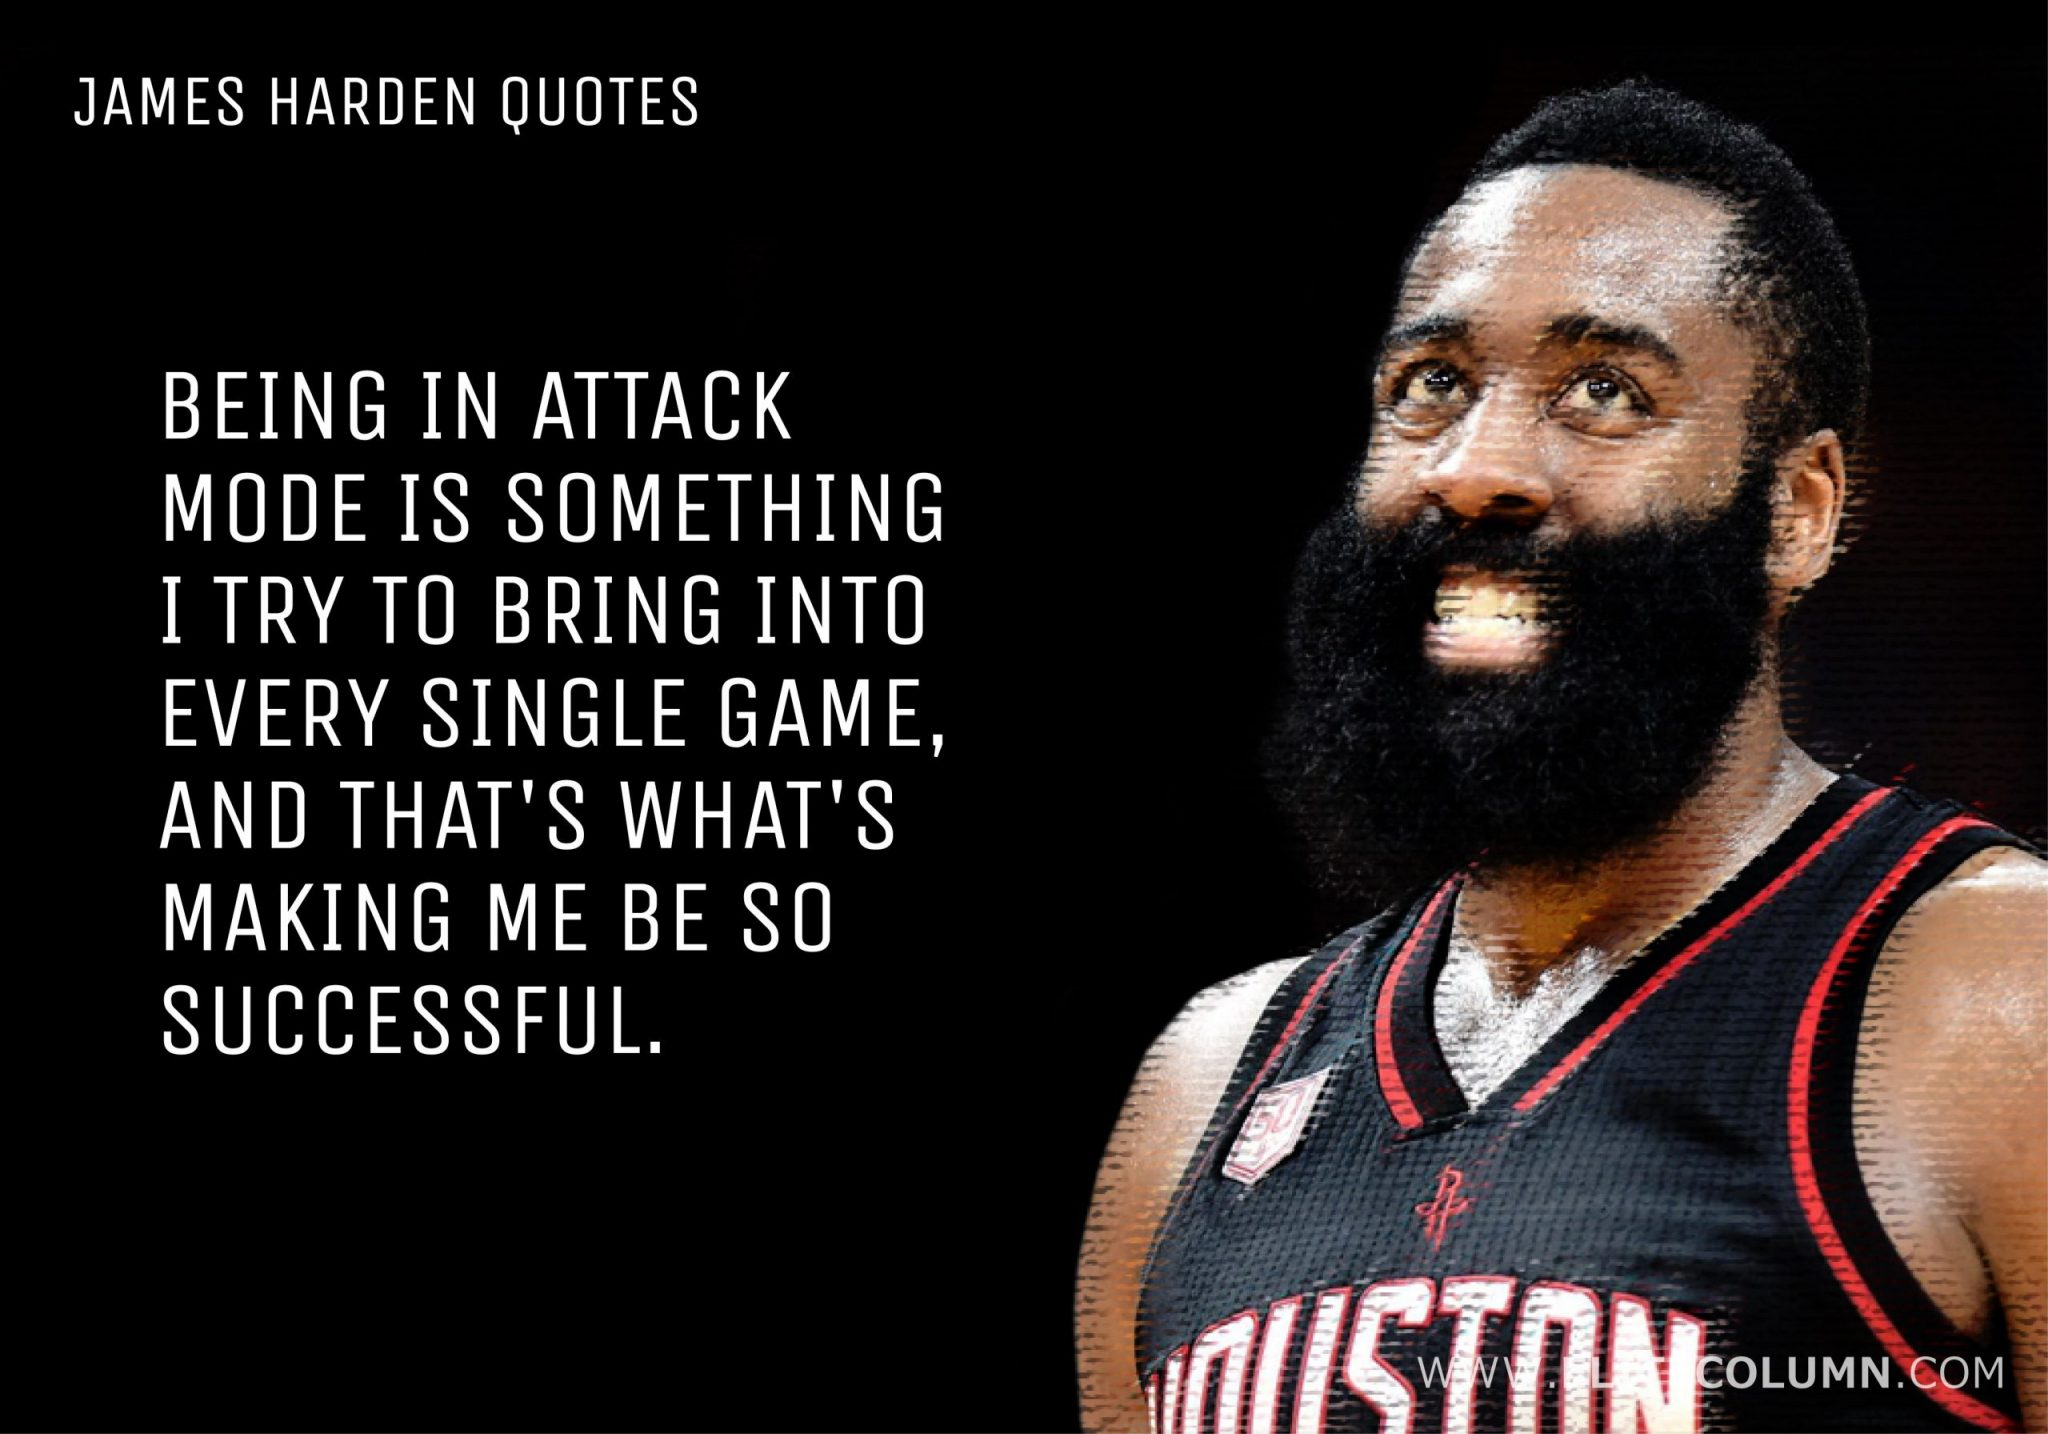 James Harden Quotes (13)